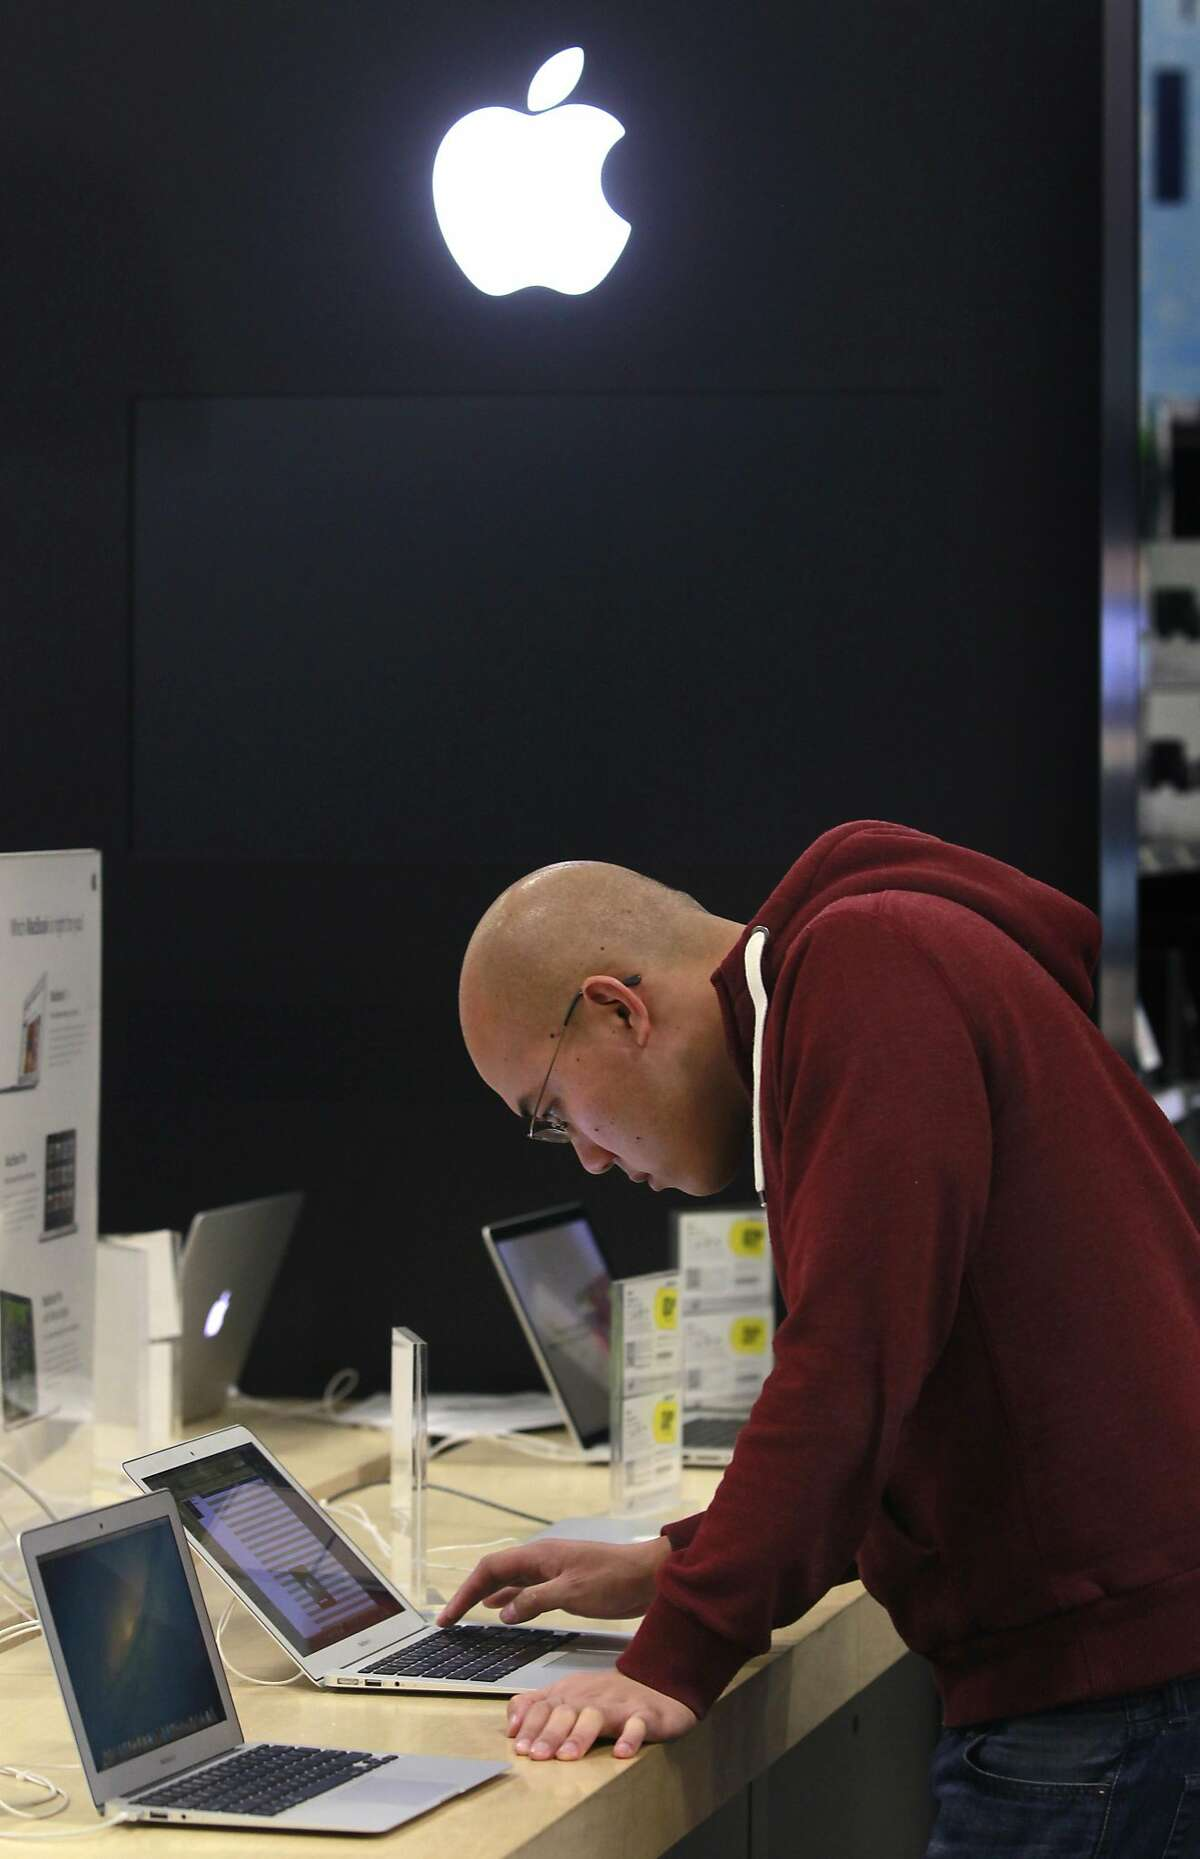 Alex Leong shops for a laptop computer during a lull in the Black Friday shopping rush at Best Buy in Oakland, Calif. on Friday, Nov. 23, 2012. Leong got to Best Buy at 3:30 a.m. after starting his shopping excursion at 9 p.m. Thursday in Livermore.